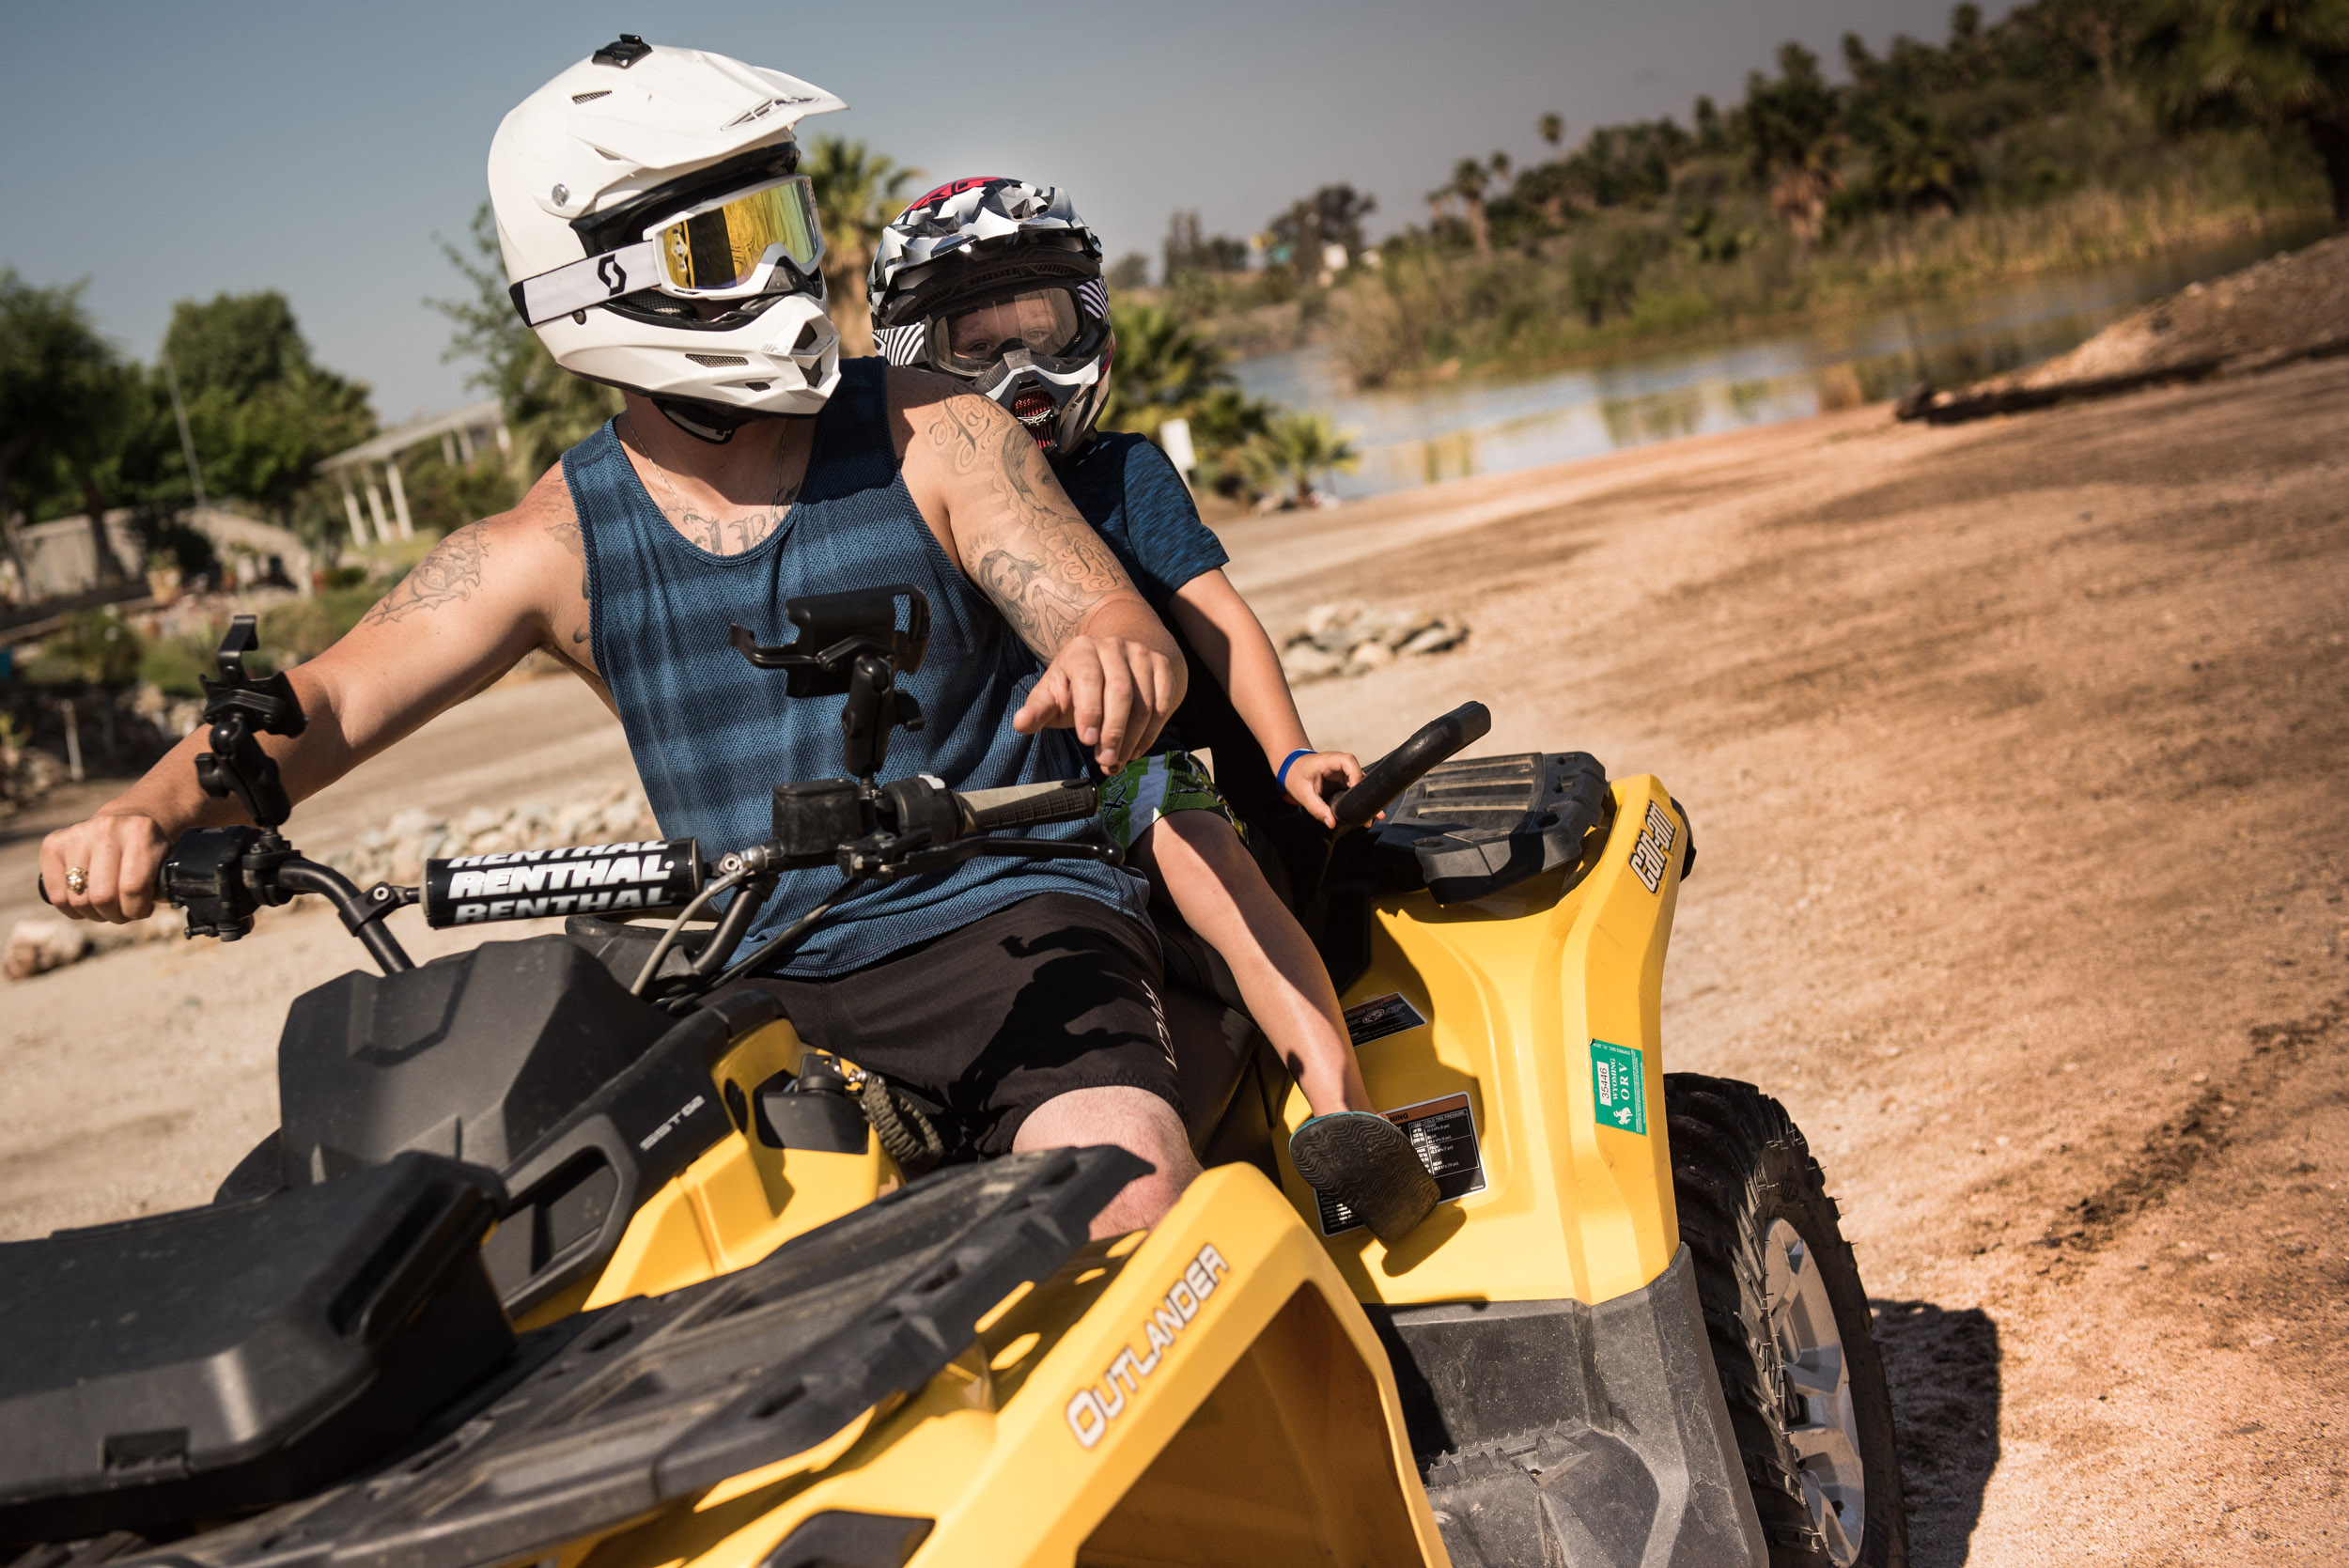 Ride With the Arizona Oasis Riders OHV Club - Join our very own community of sand-spurning, off-road Oasis Riders for monthly meet-ups and group rides.